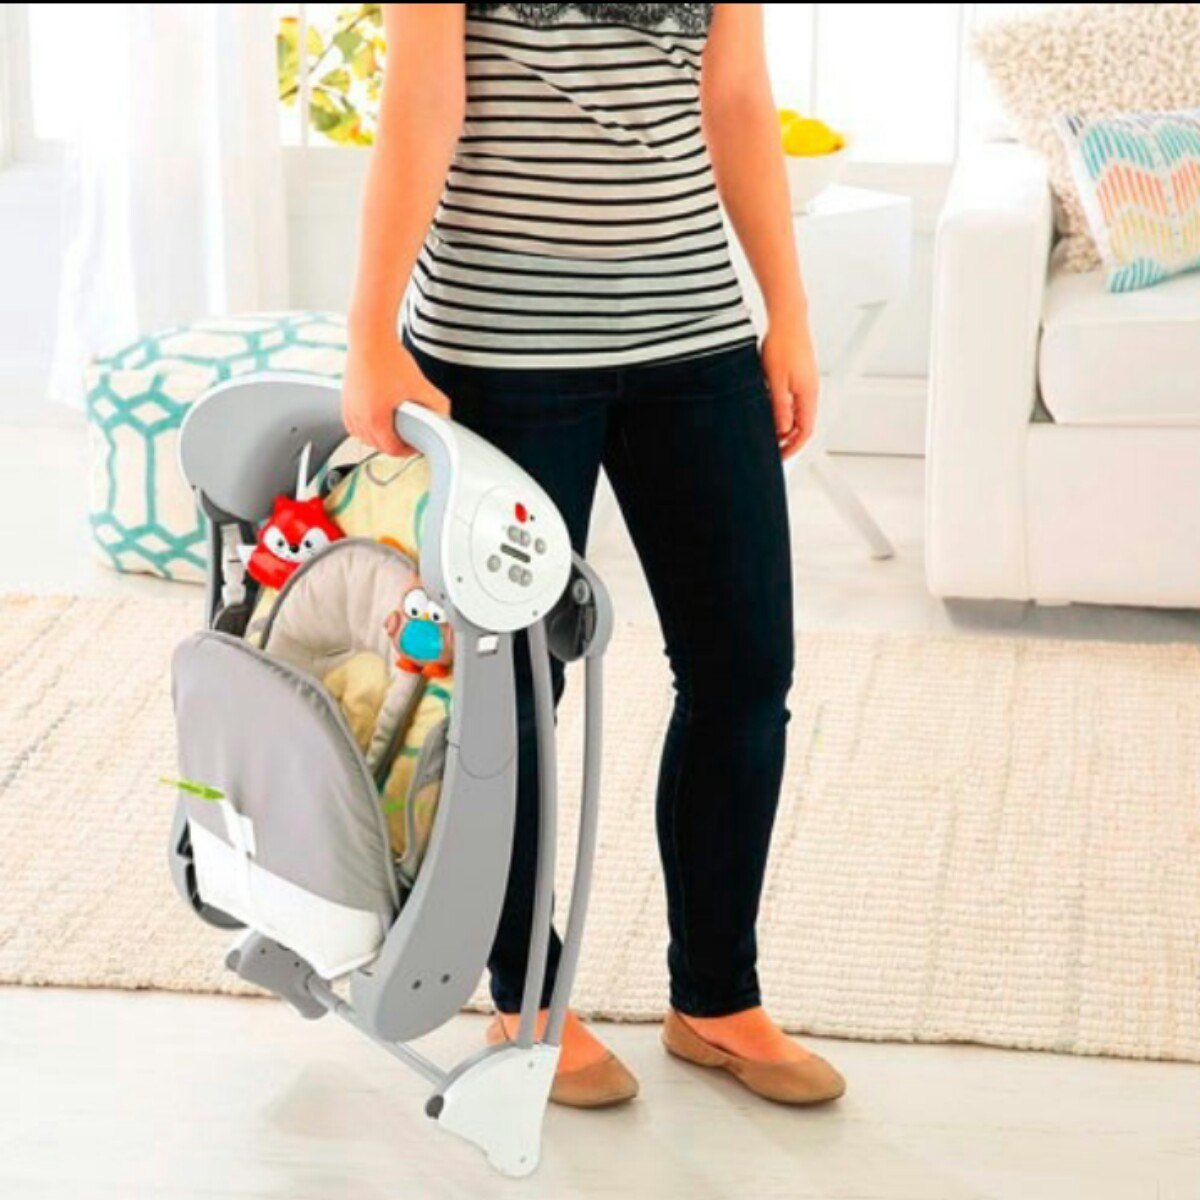 Silla Mecedora Fisher Price   49000 en Mercado Libre